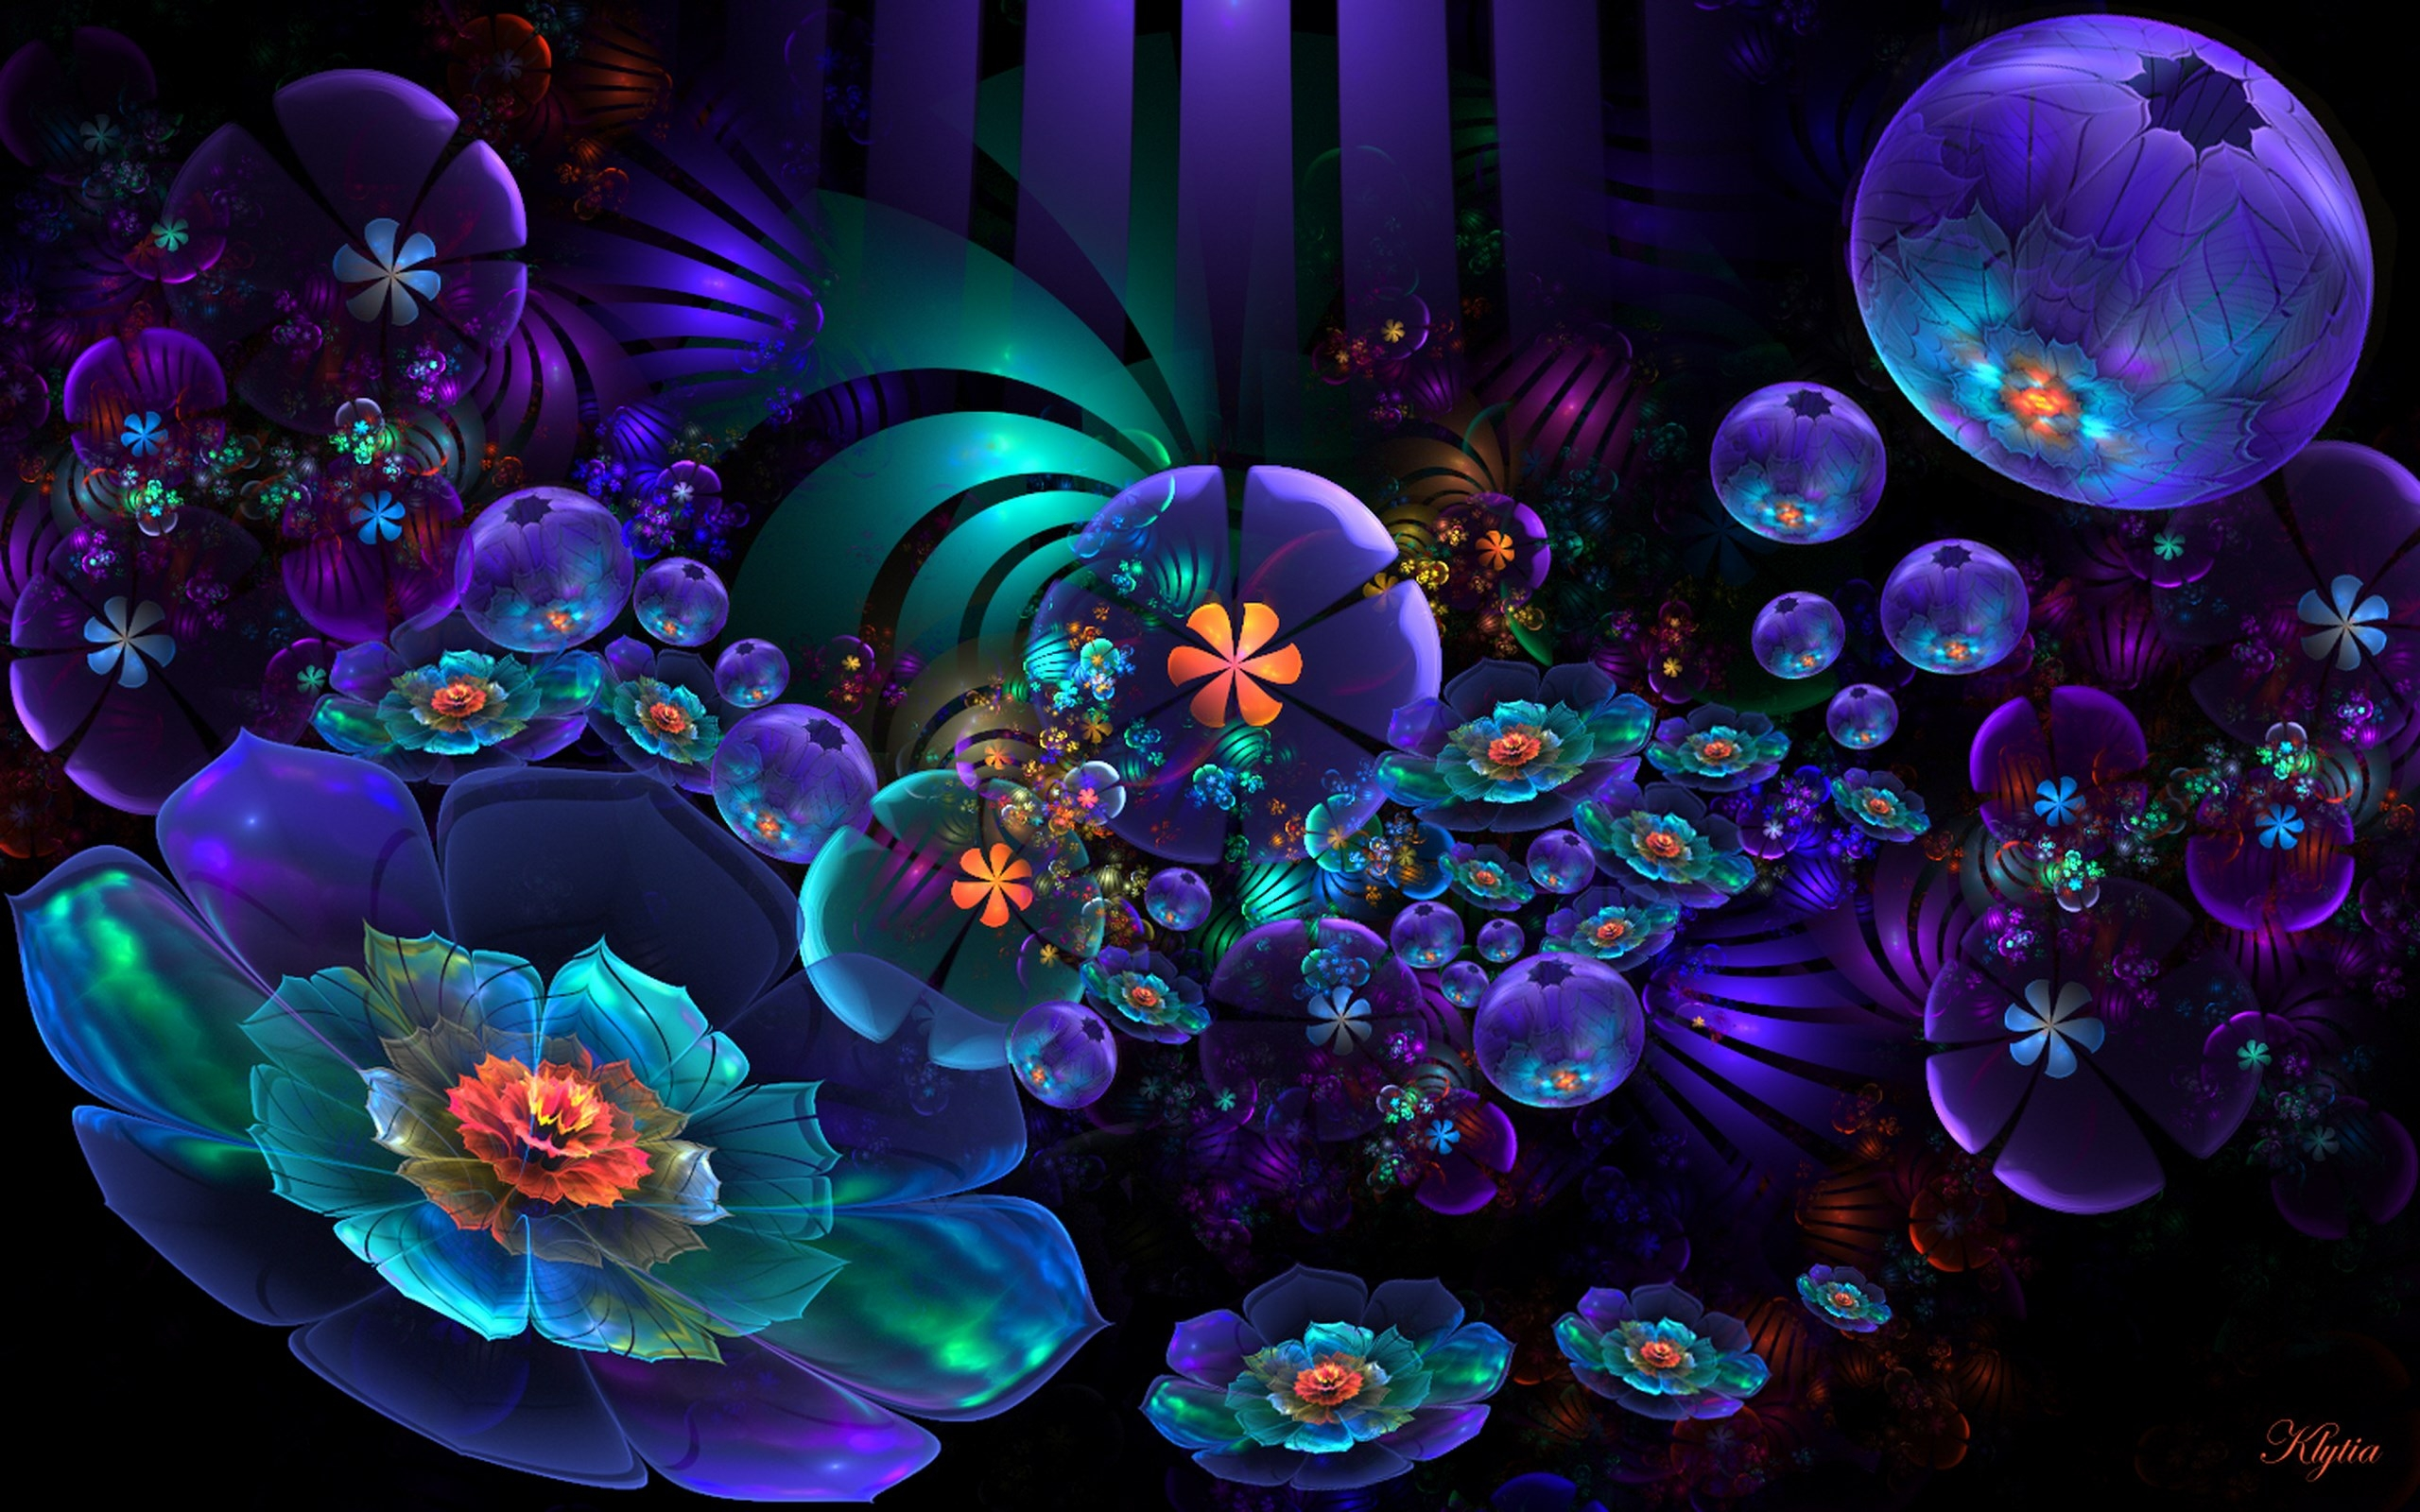 Neon Flower Abstract Full HD Wallpaper And Background Image